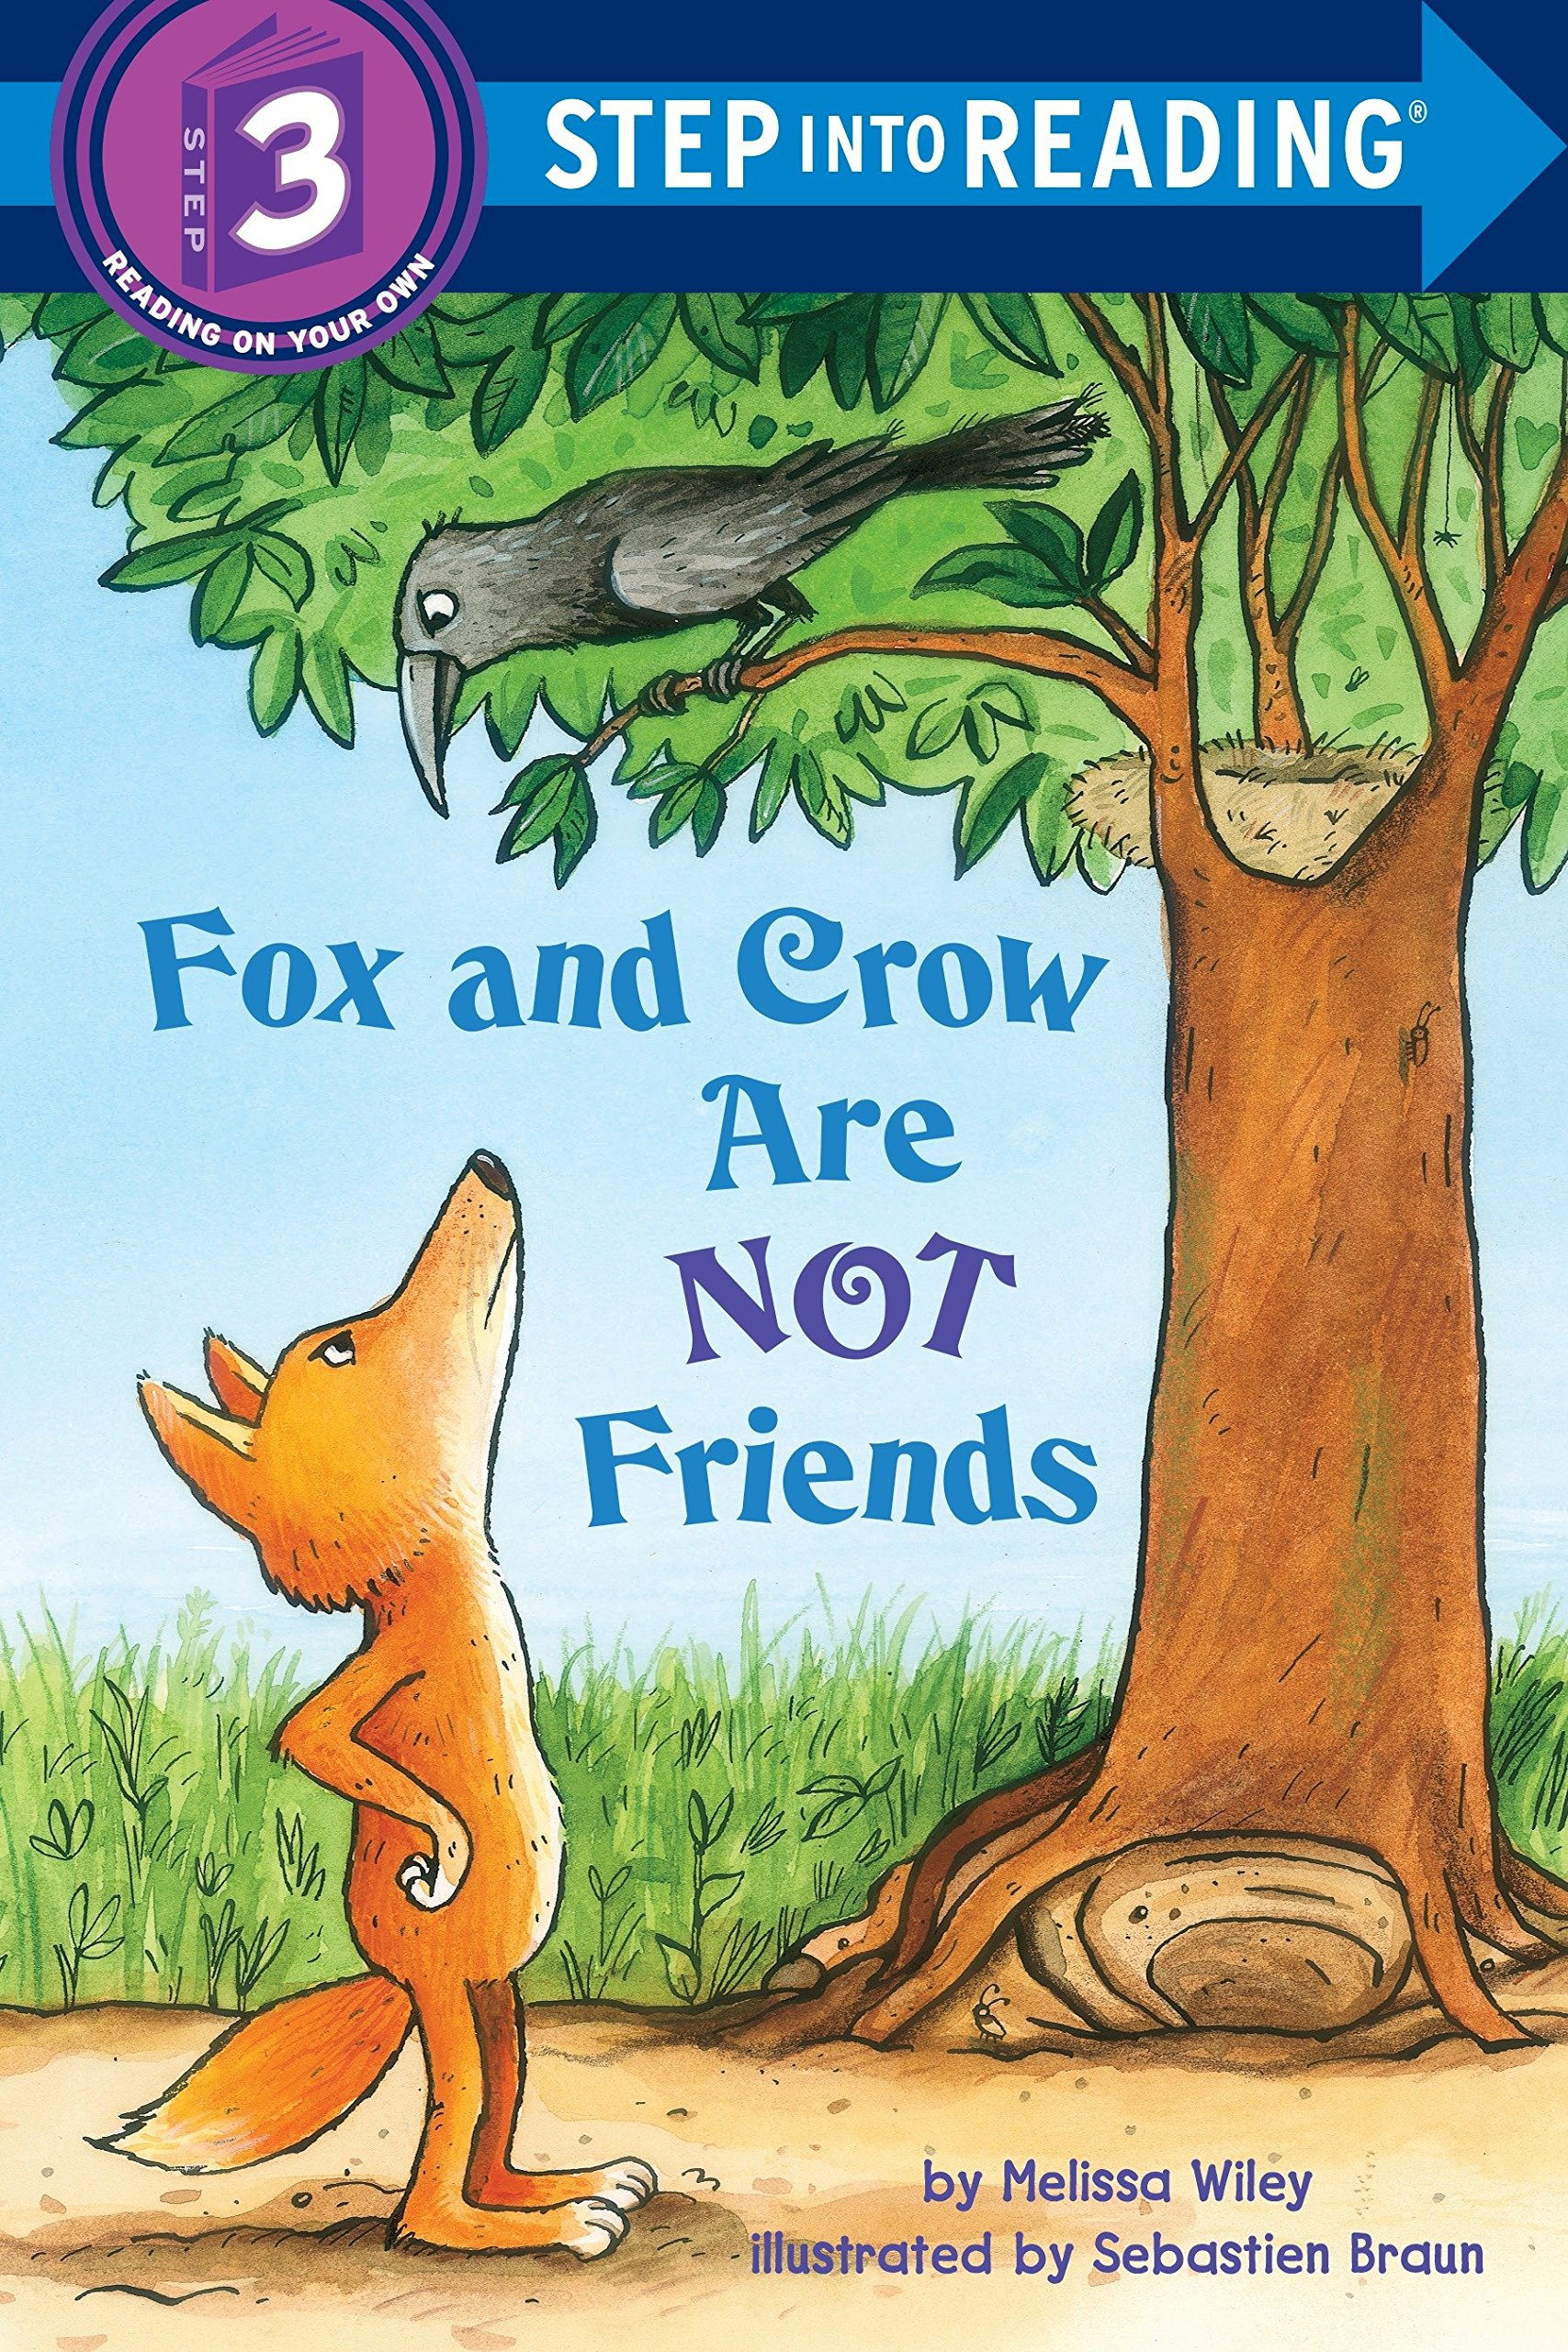 Fox and Crow are not friends, by Melissa Wiley ; illustrated by Sebastien Braun